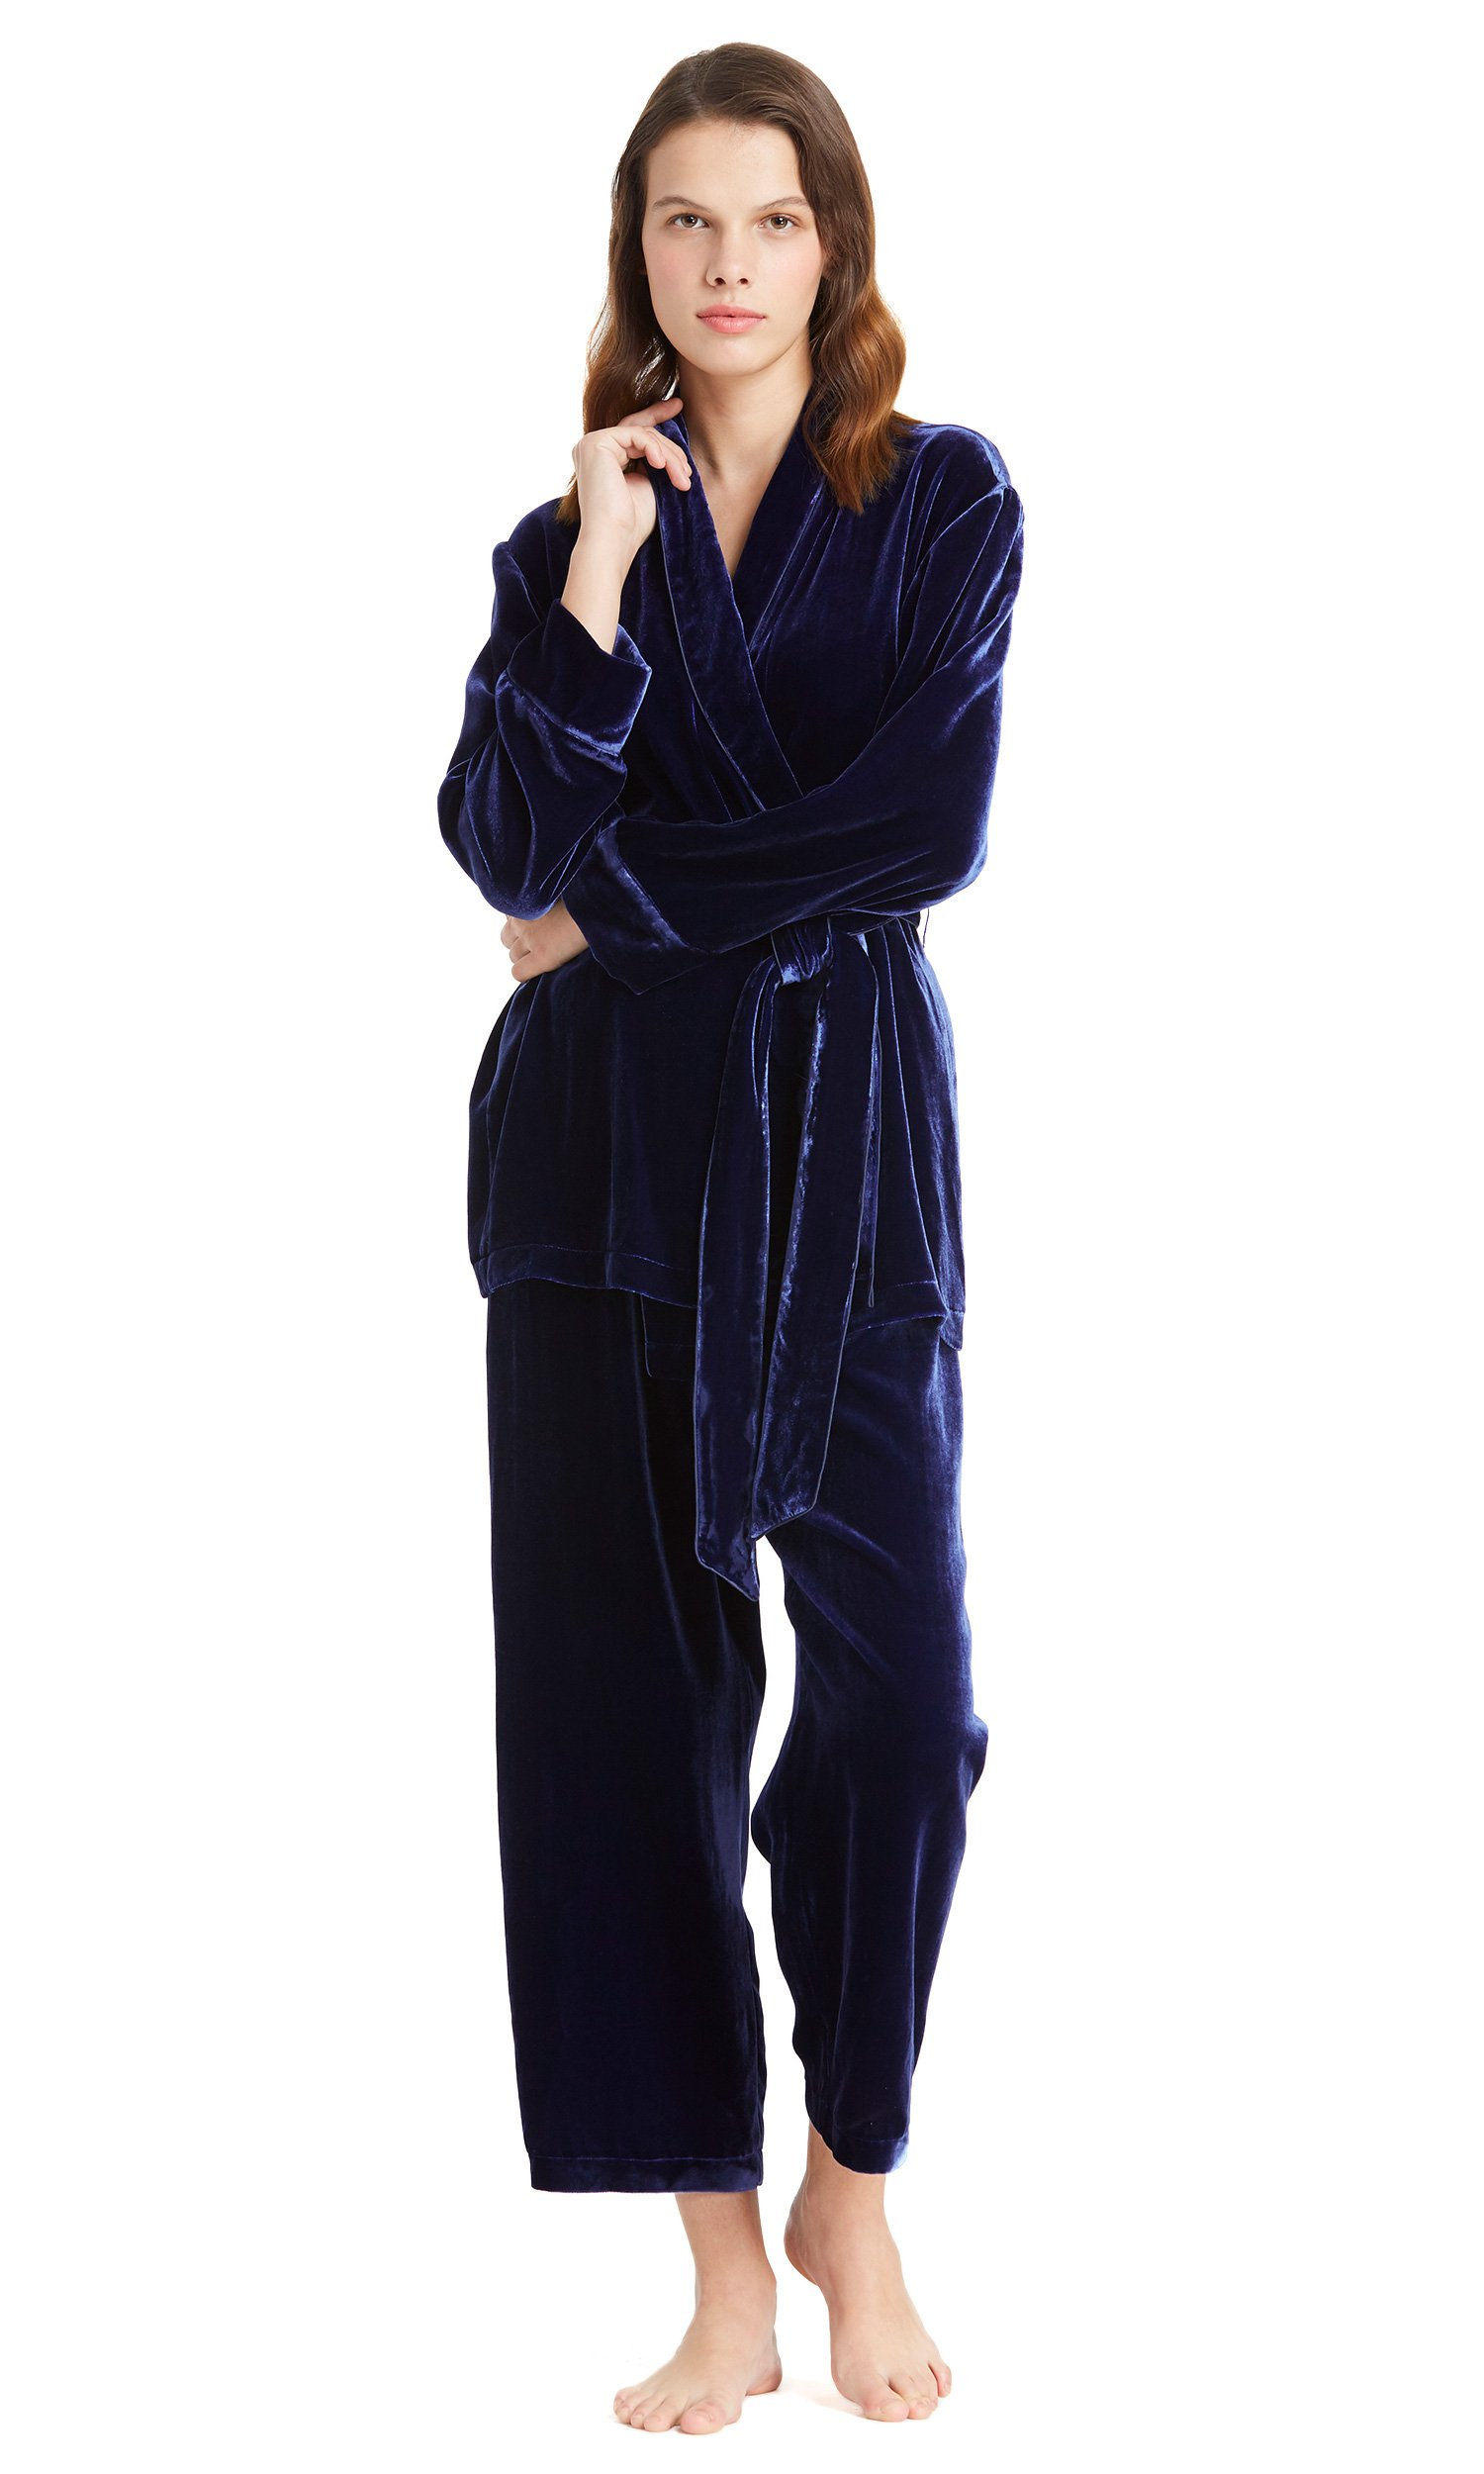 LilySilk Silk Velvet Pajamas Set for Women Comfy Simple Robe Style Top Long Pant Winter Velvet Navy M/8-10 by LilySilk